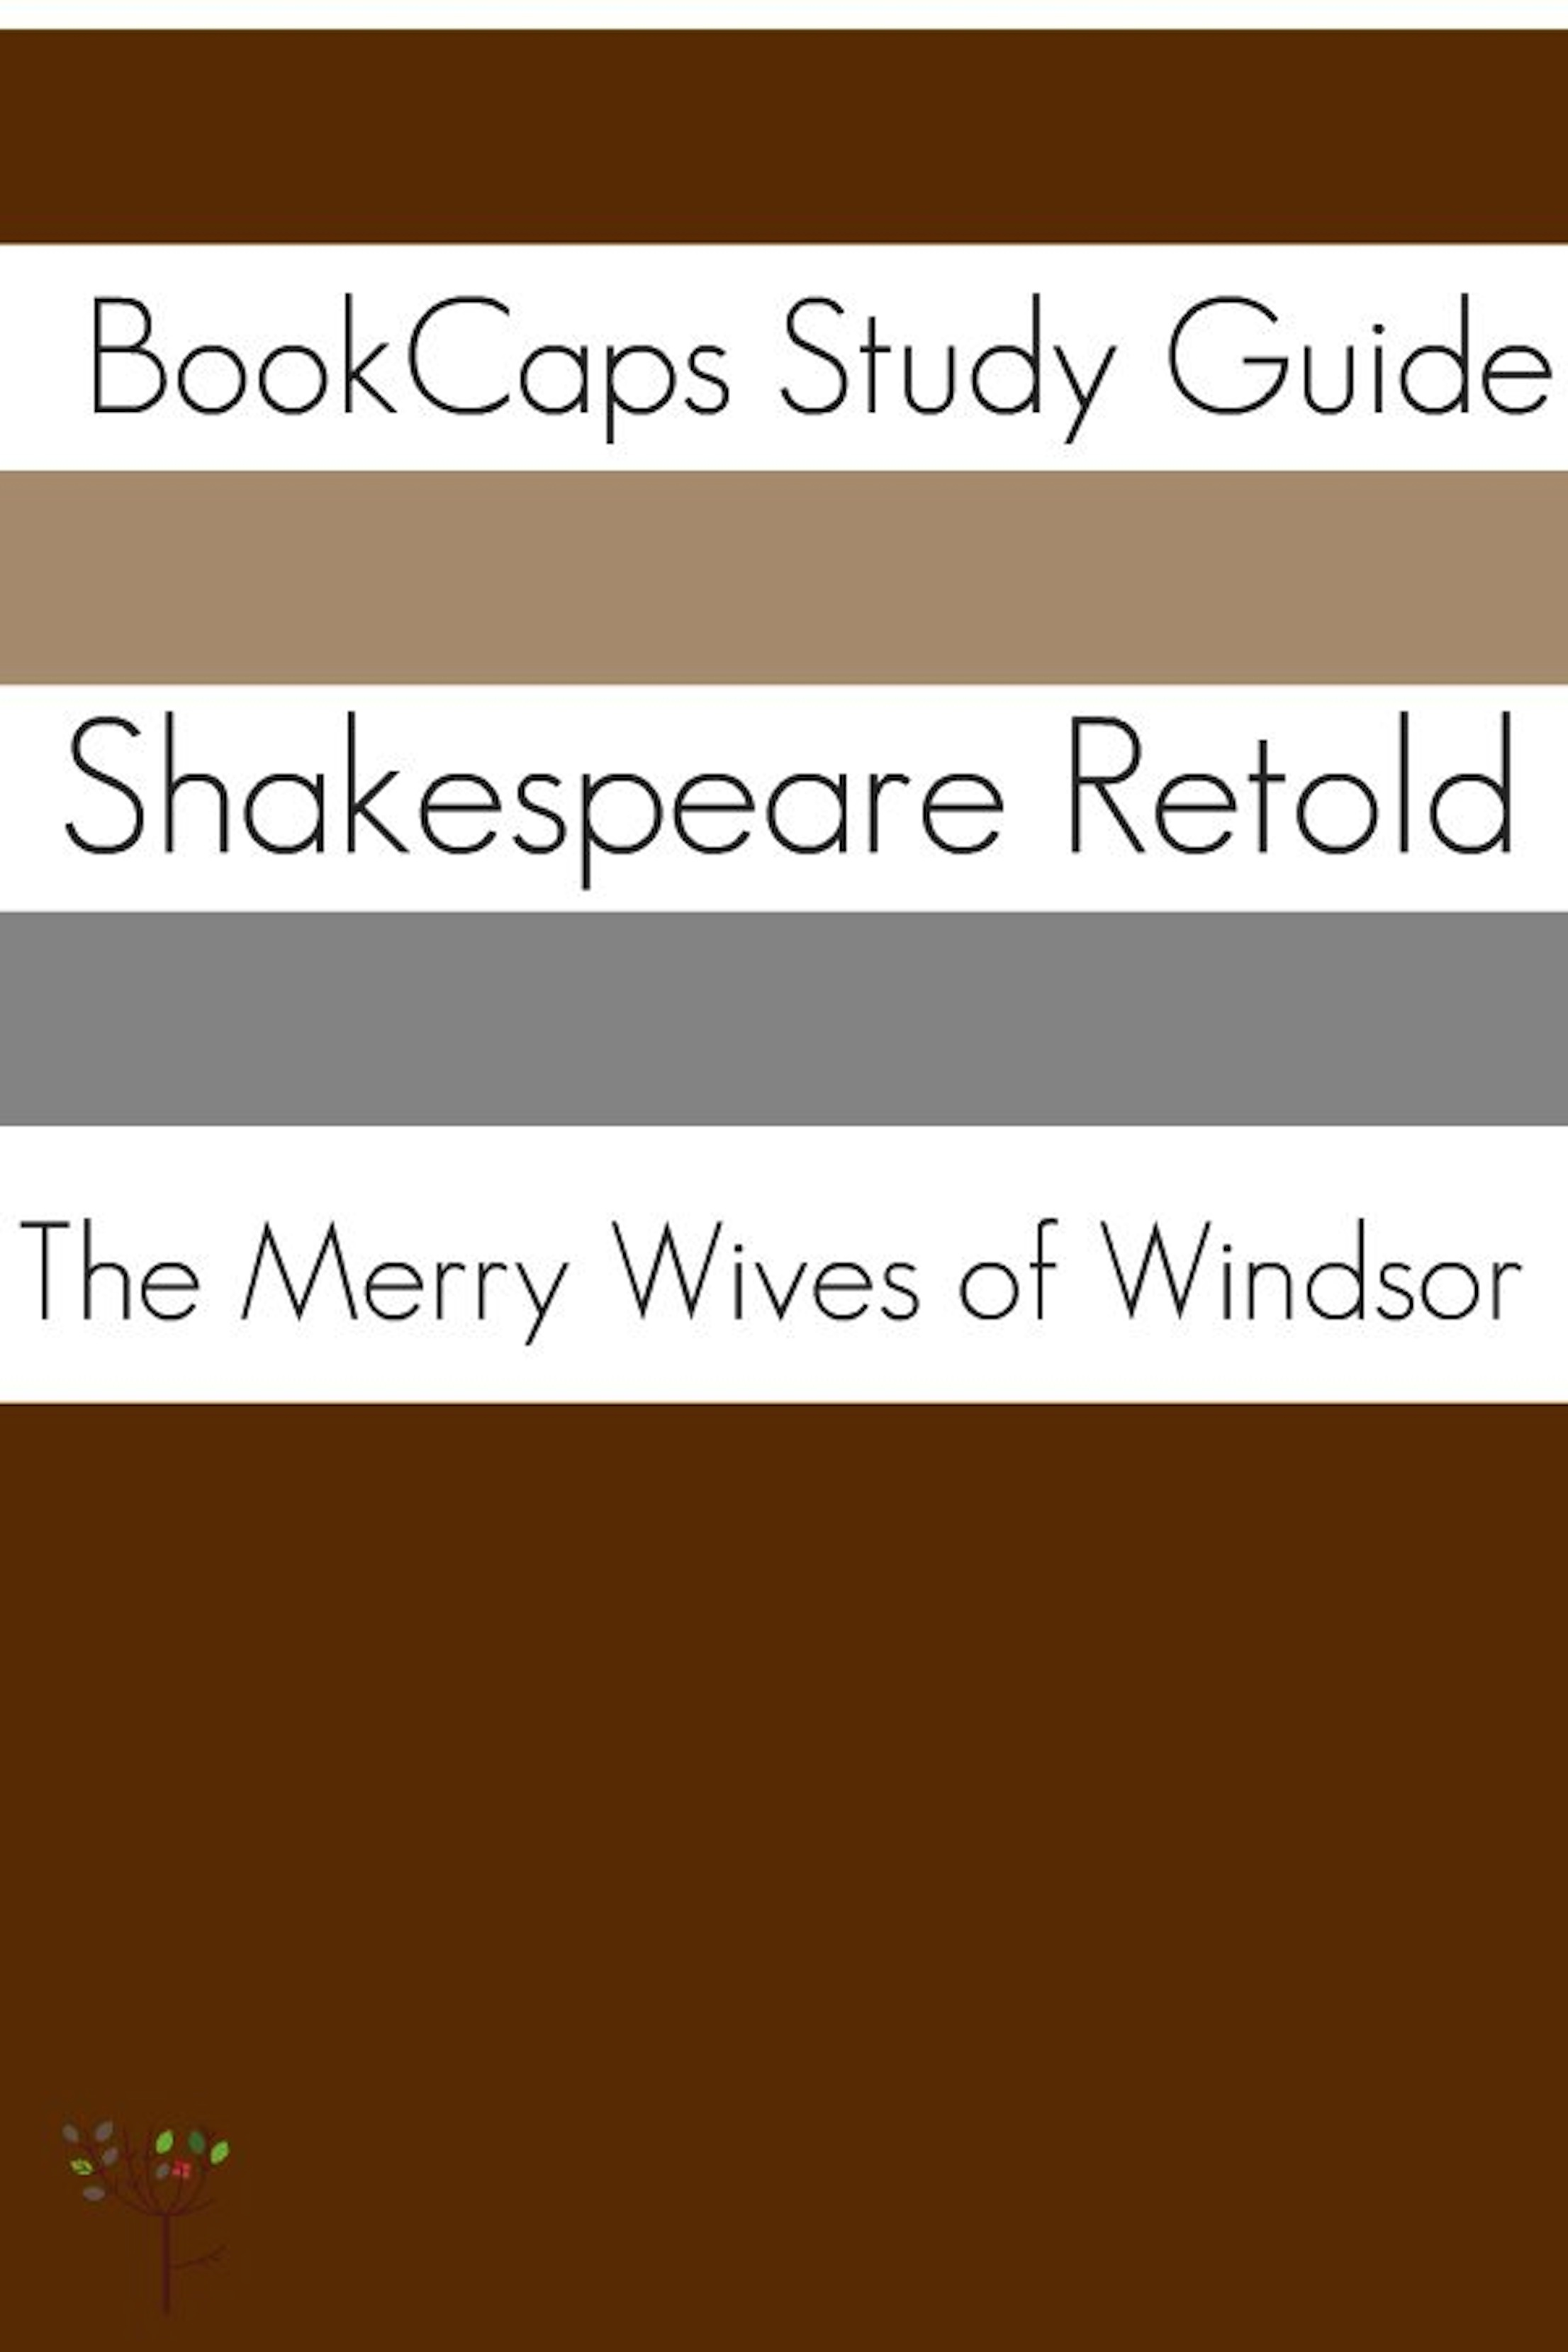 BookCaps - The Merry Wives of Windsor In Plain and Simple English (A Modern Translation and the Original Version)